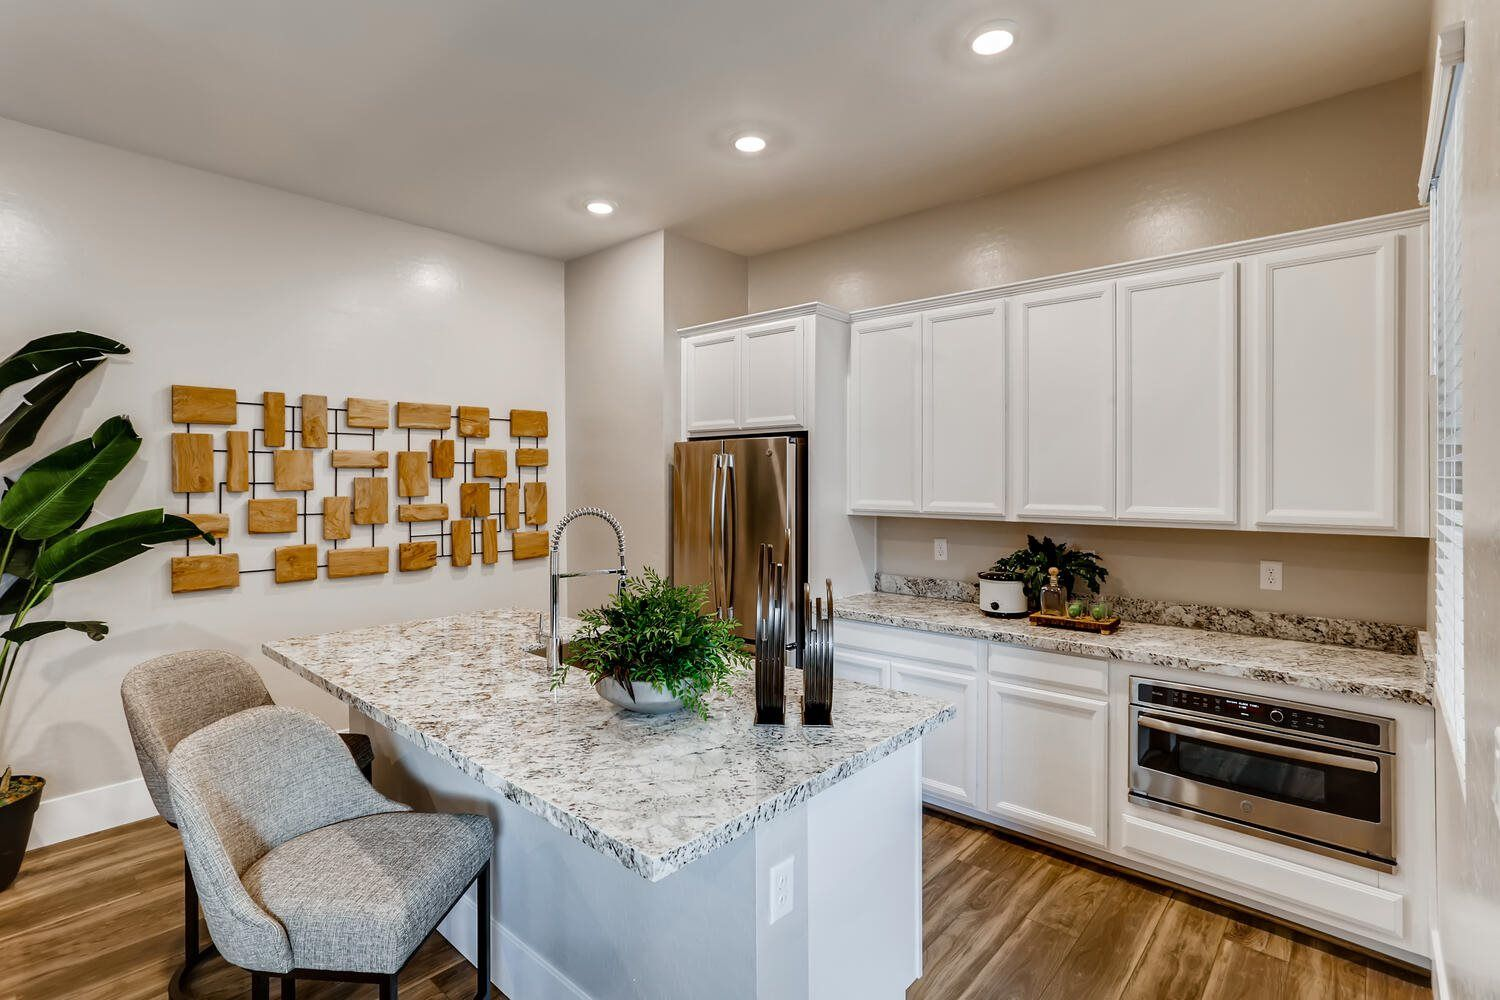 Kitchen featured in the Eleanor Next Gen By Lennar in Las Vegas, NV